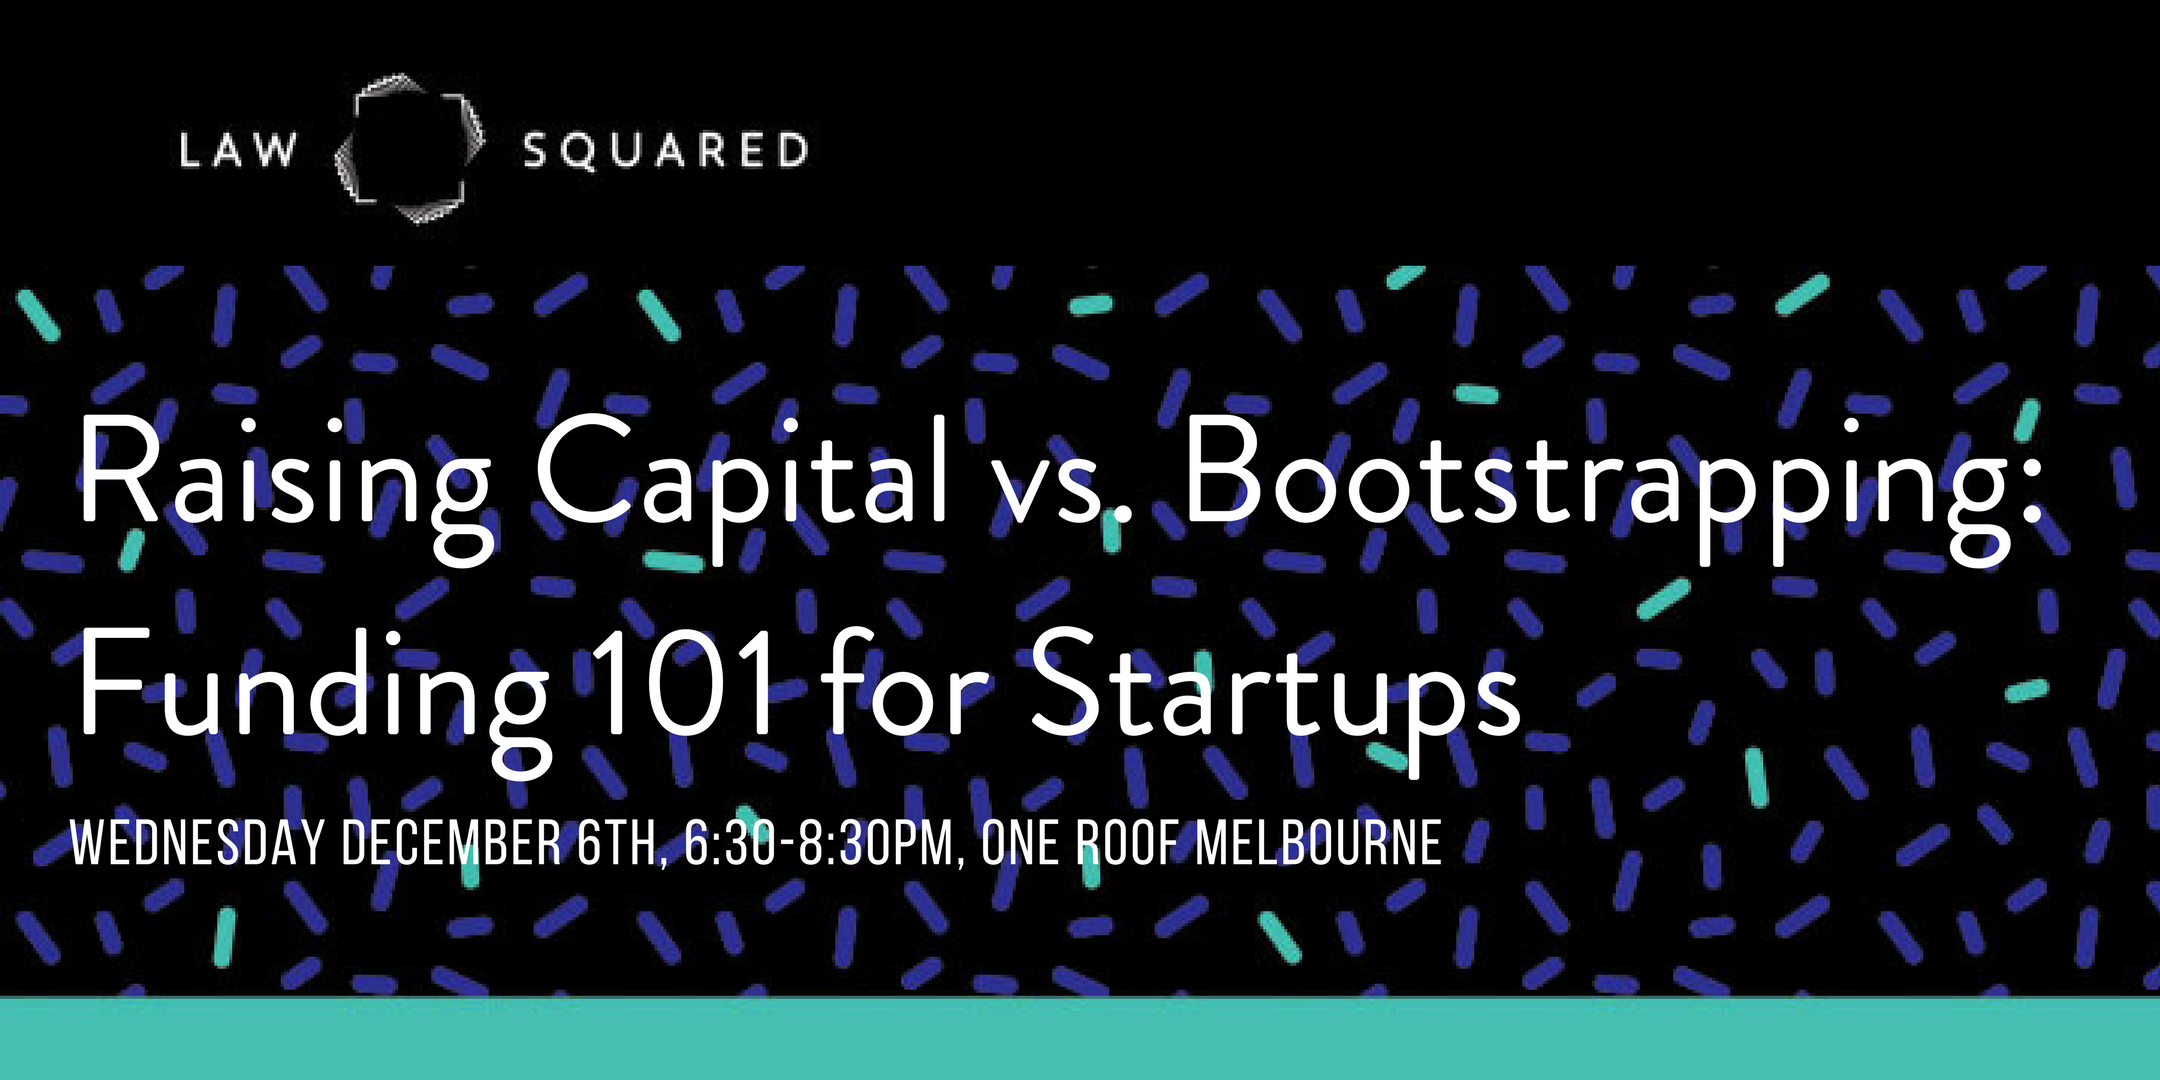 Law Squared offers numerous events every year for the Australian startup community and entrepreneur ecosystem.